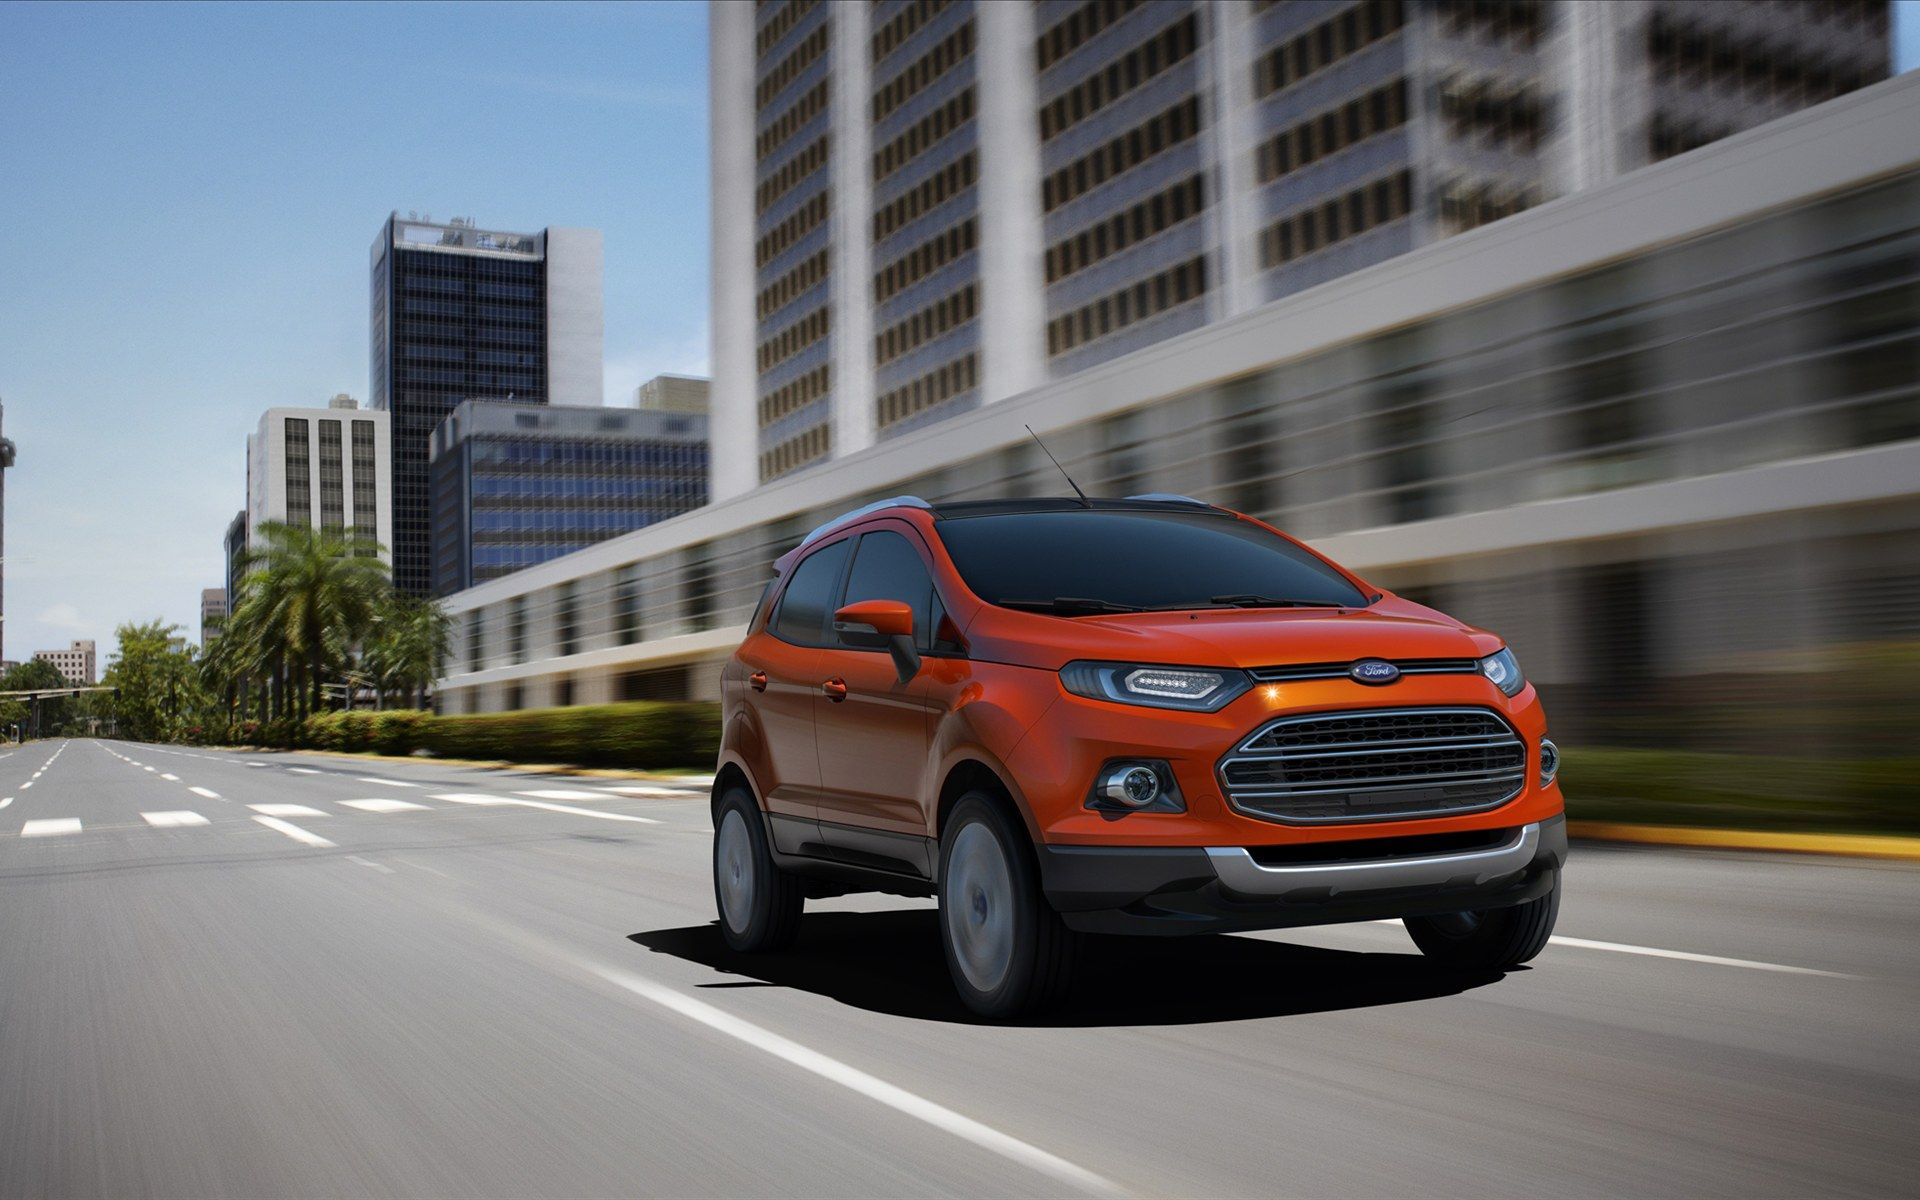 Ford Ecosport 2013 Ford Ecosport Ford Cars Motorcycles Cat